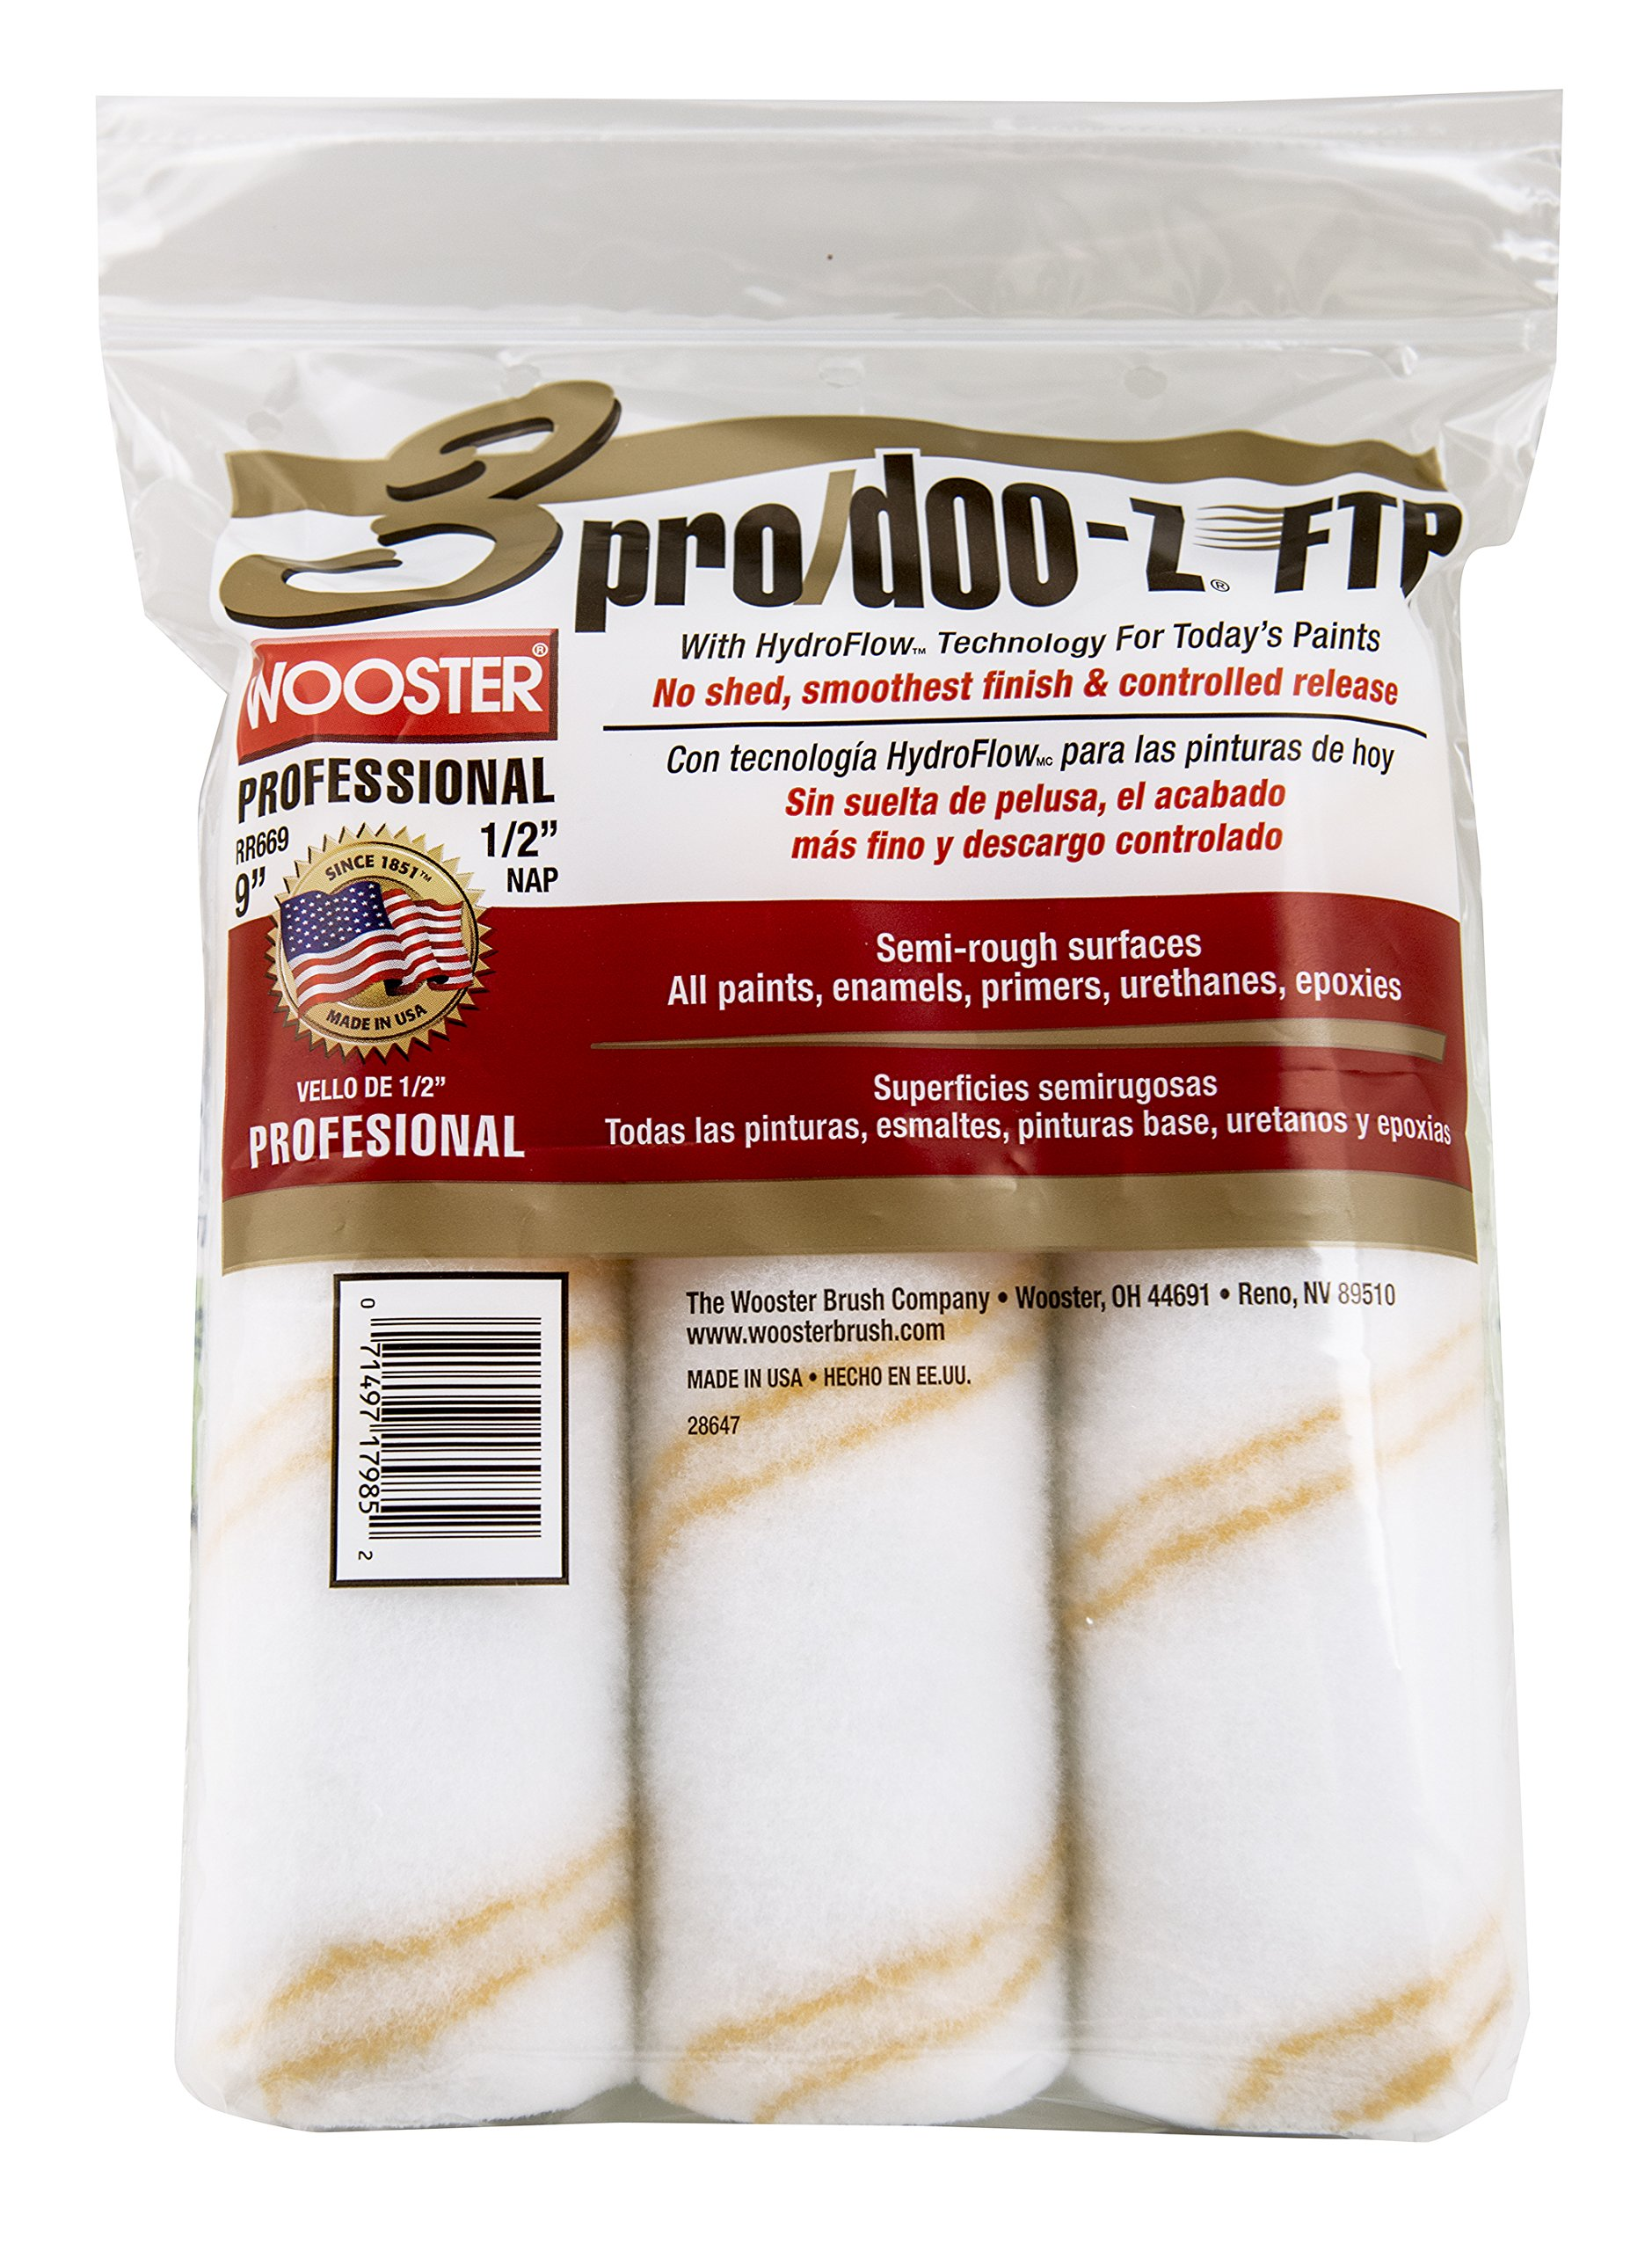 The Wooster Brush Company RR669-9 Pro Doo Z FTP Roller Cover 1/2-Inch Nap, 3-Pack by Wooster Brush